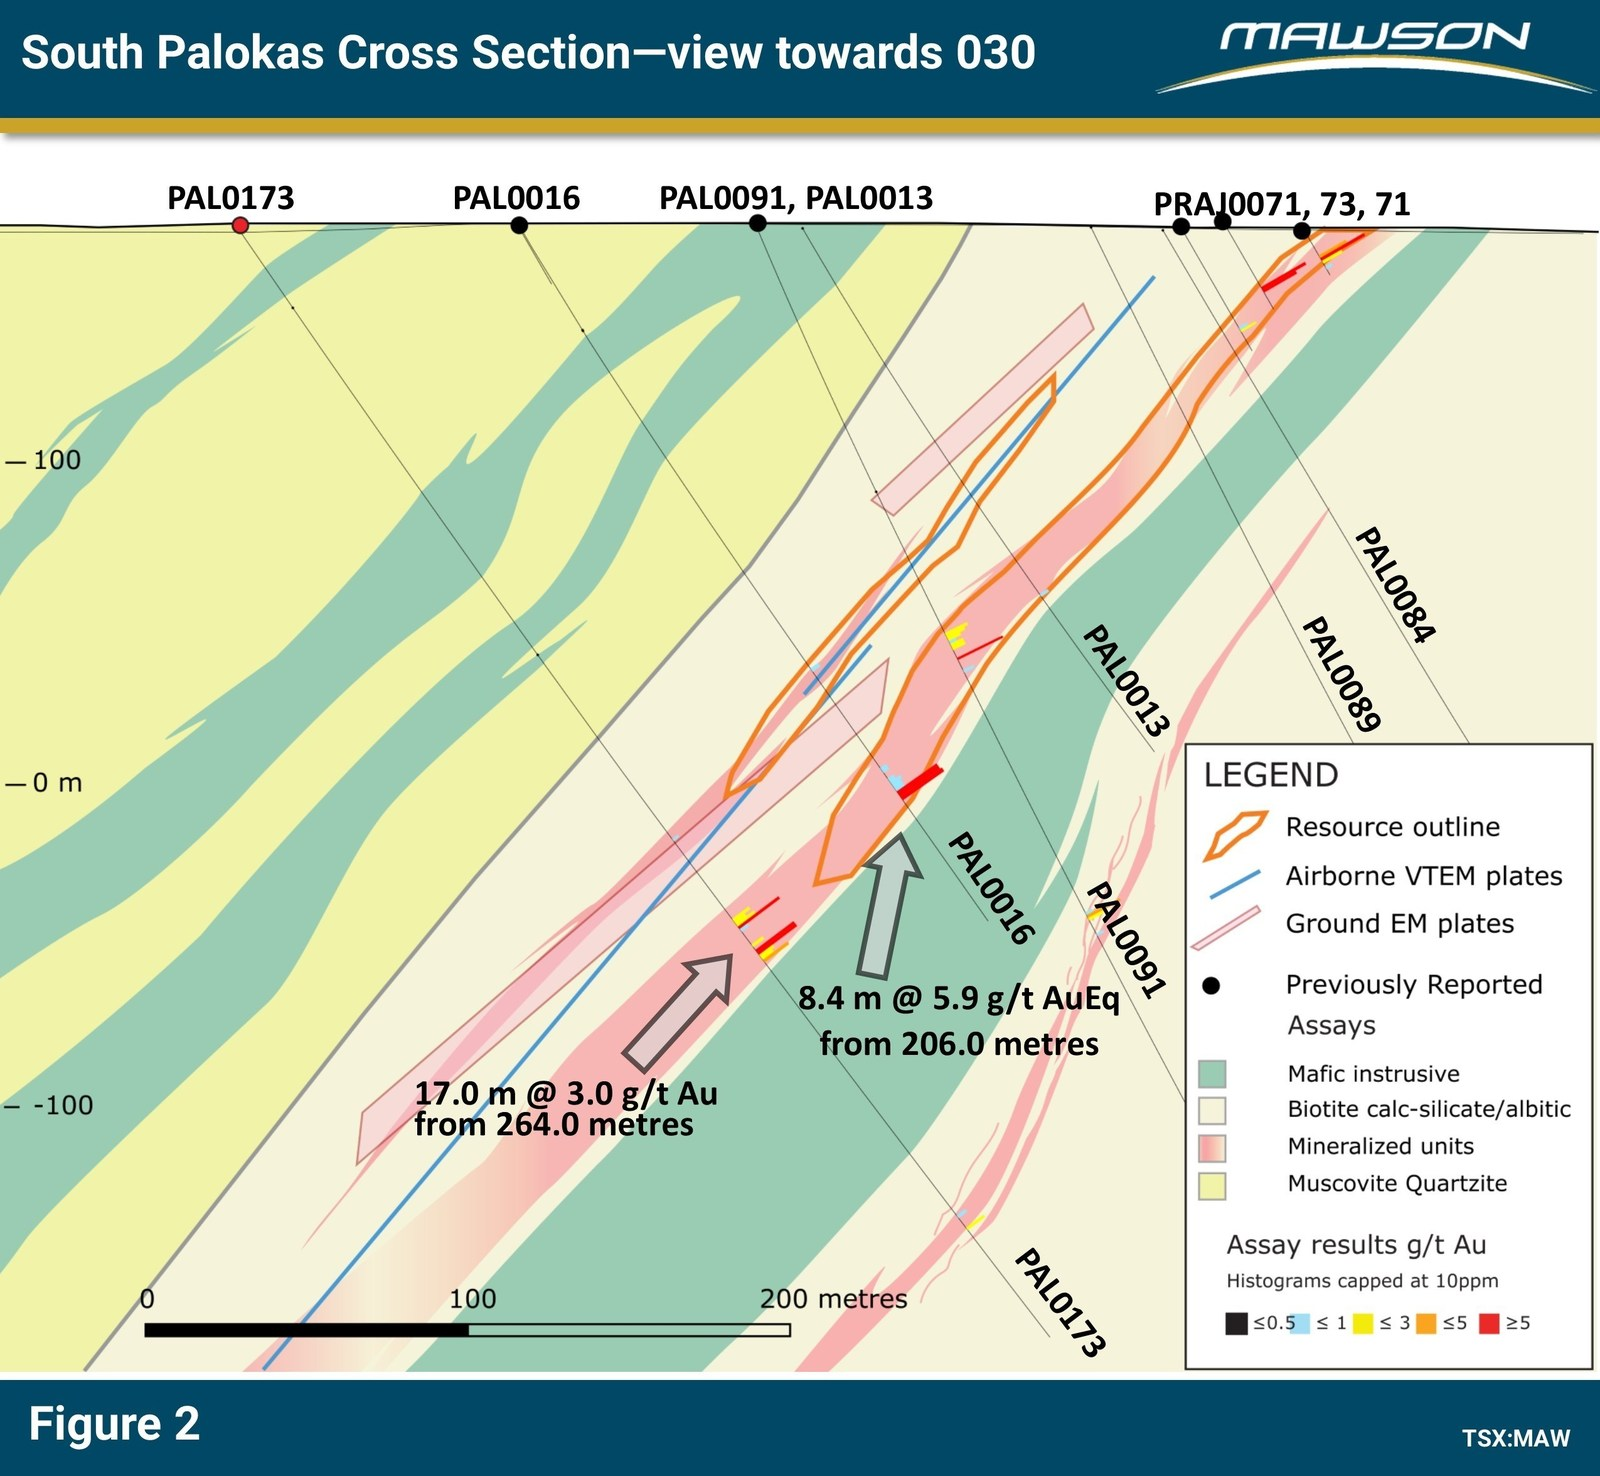 Figure 2: Cross section of South Palokas showing location of PAL0173, extent of existing resource and modelled EM plates.